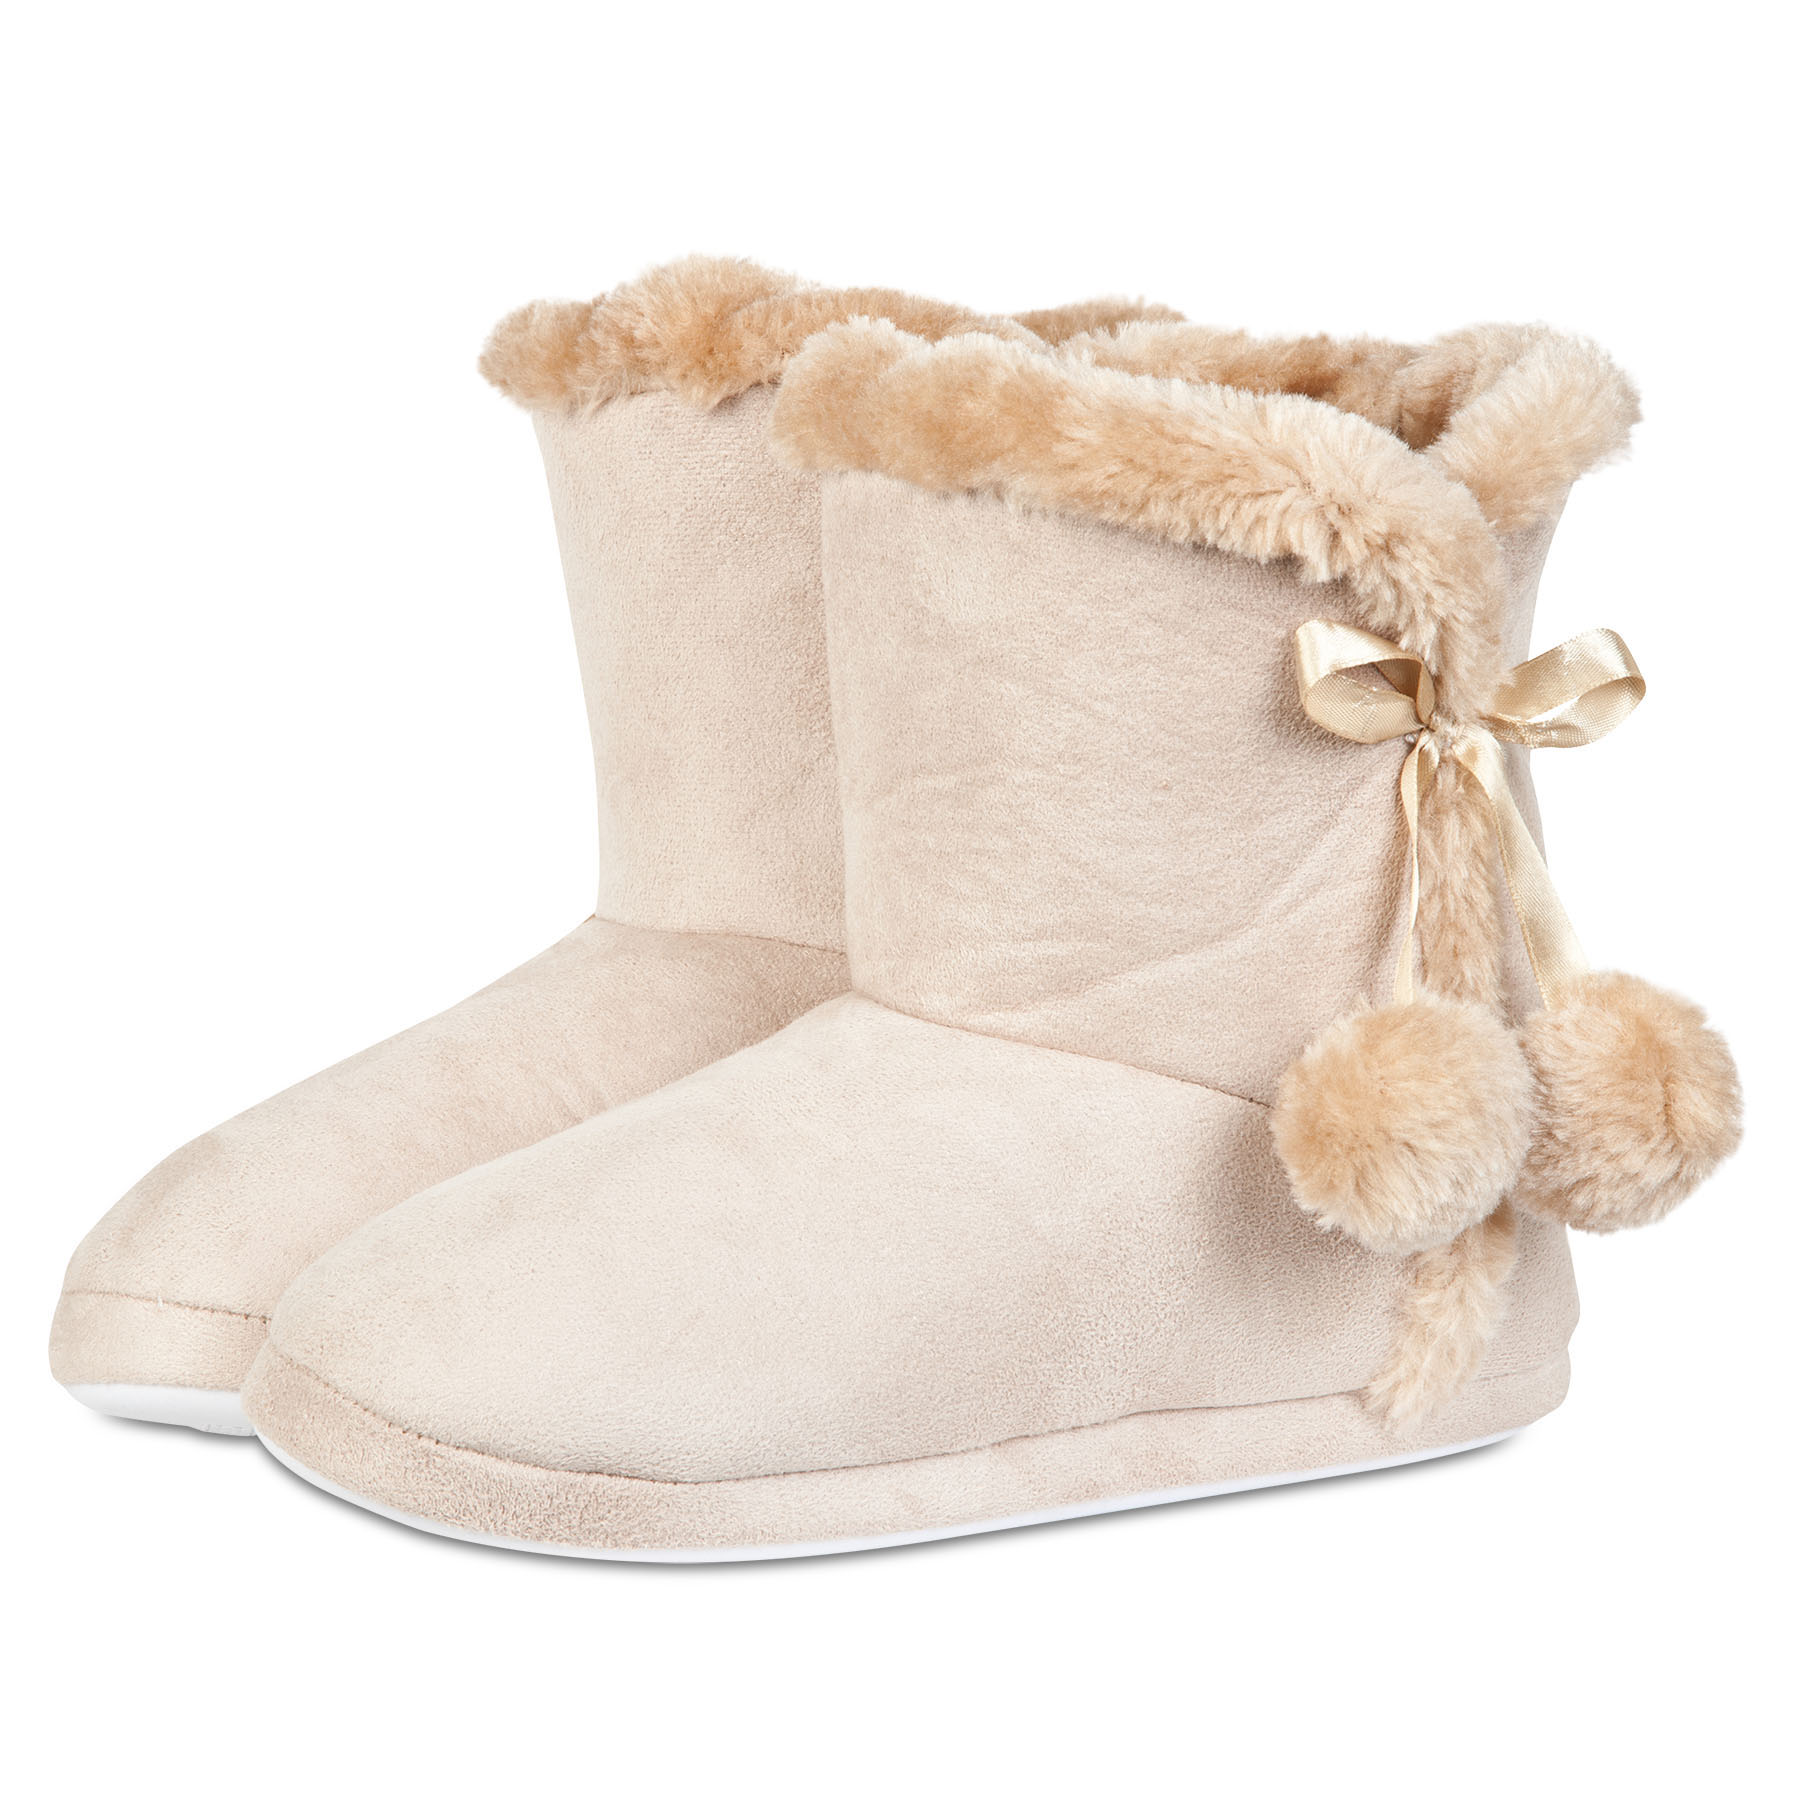 Sunderland Boot Slipper - Tan - Womens